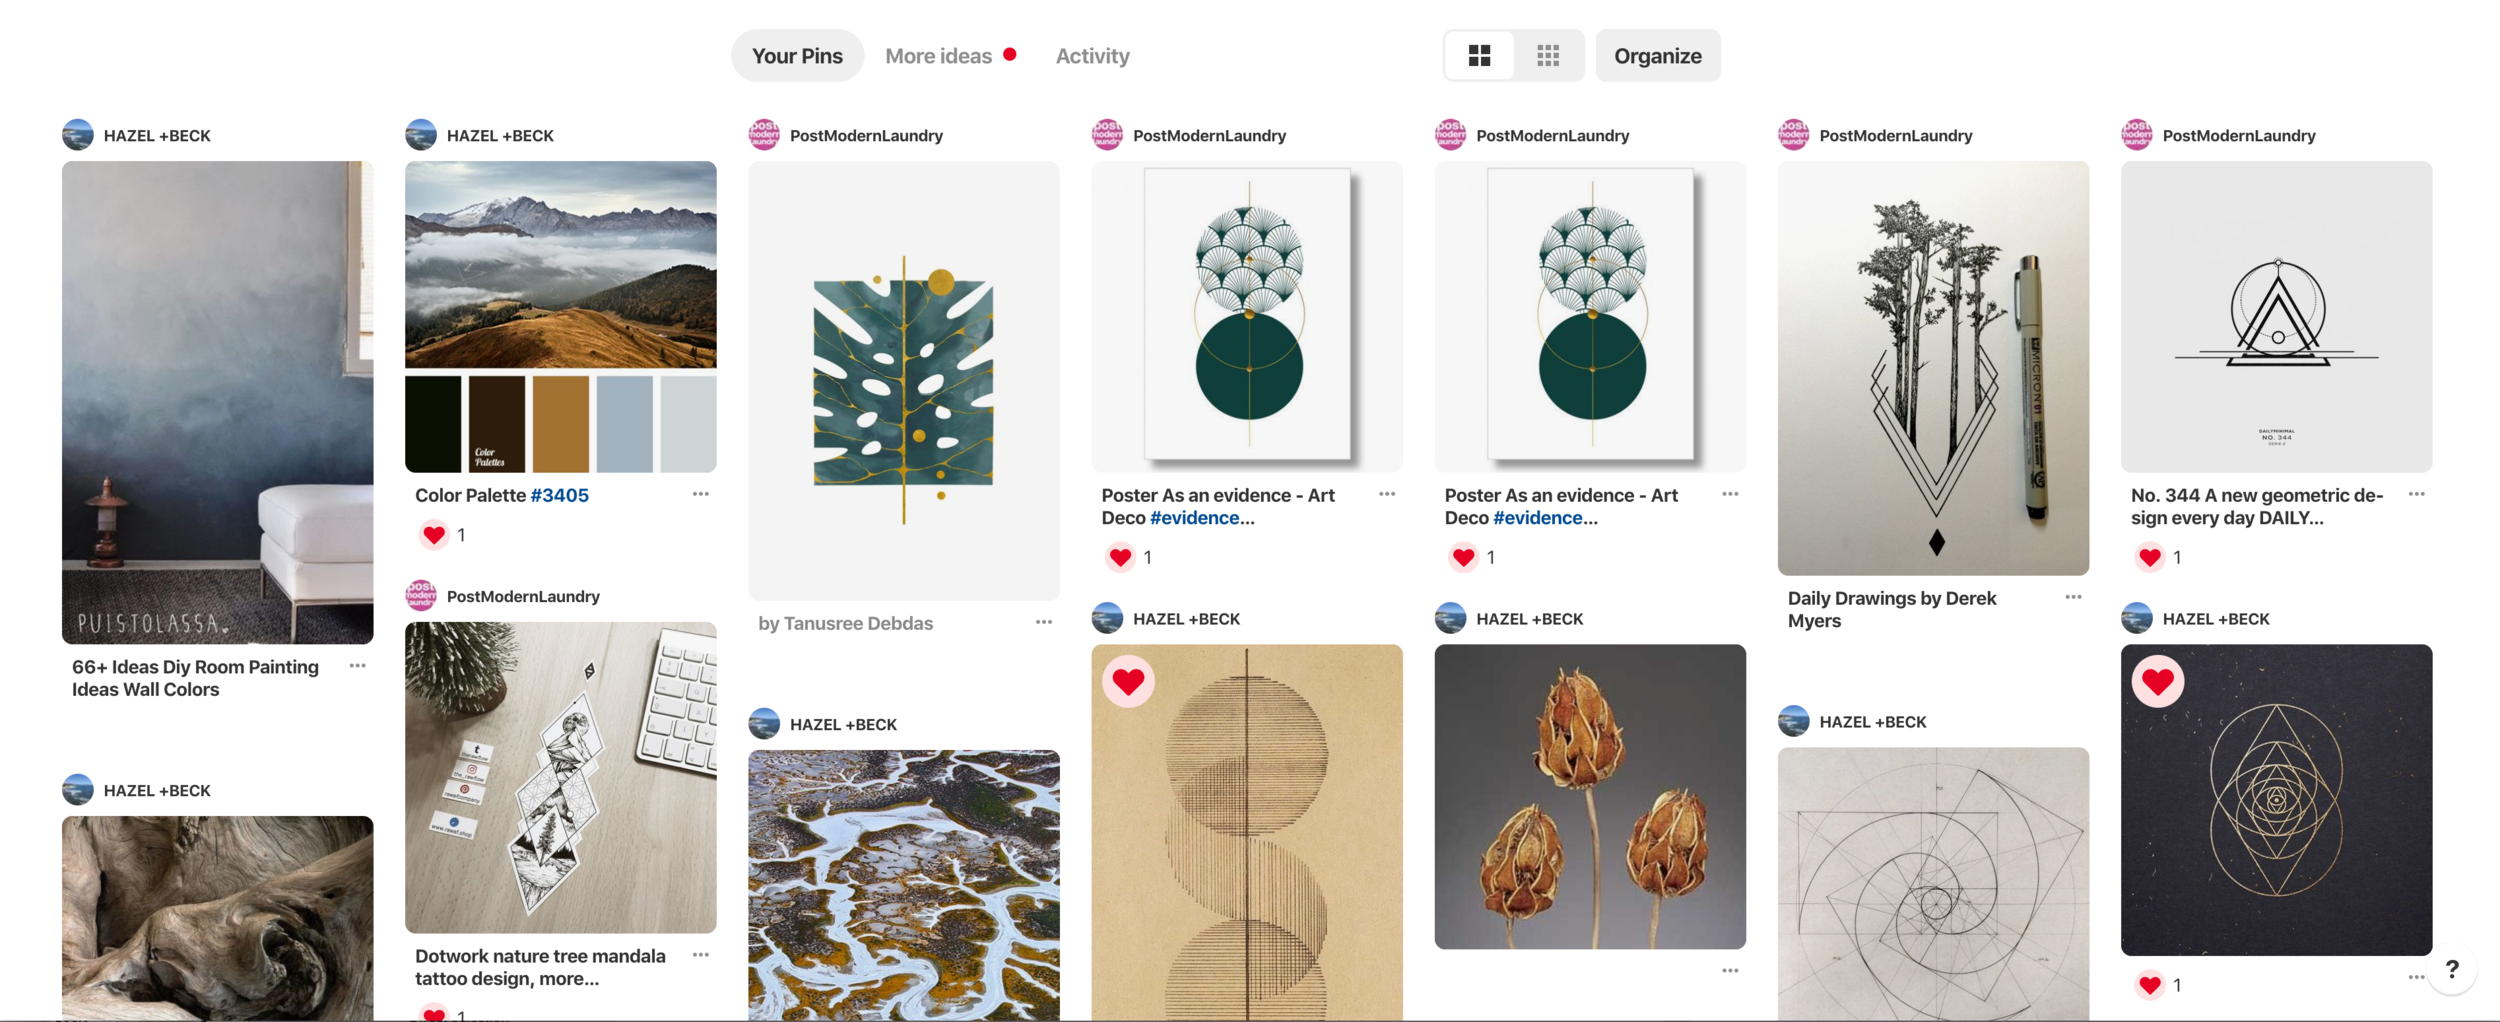 Screenshot of our collaborative Pinterest board for inspiration and development of common design language.